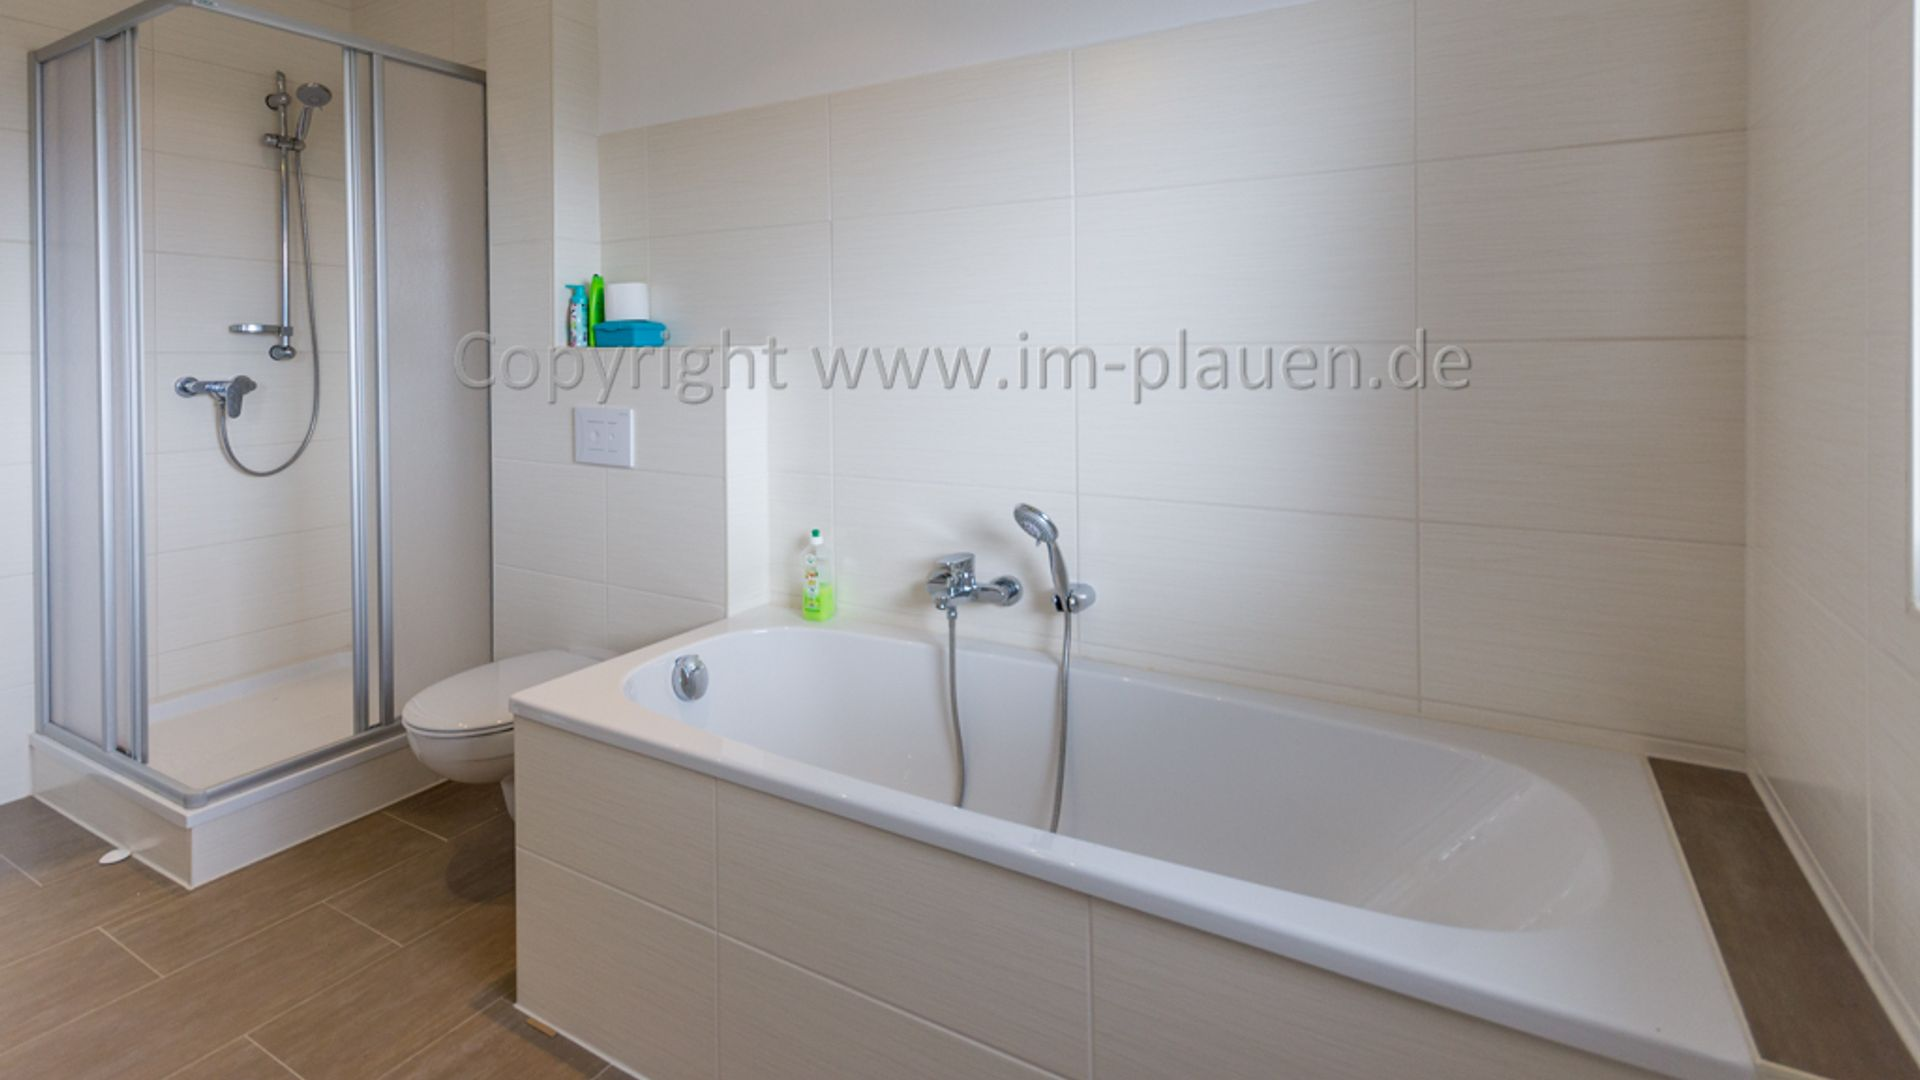 4 Bed Loft At Freiheitsstrasse 39 08523 Plauen Germany For Rent